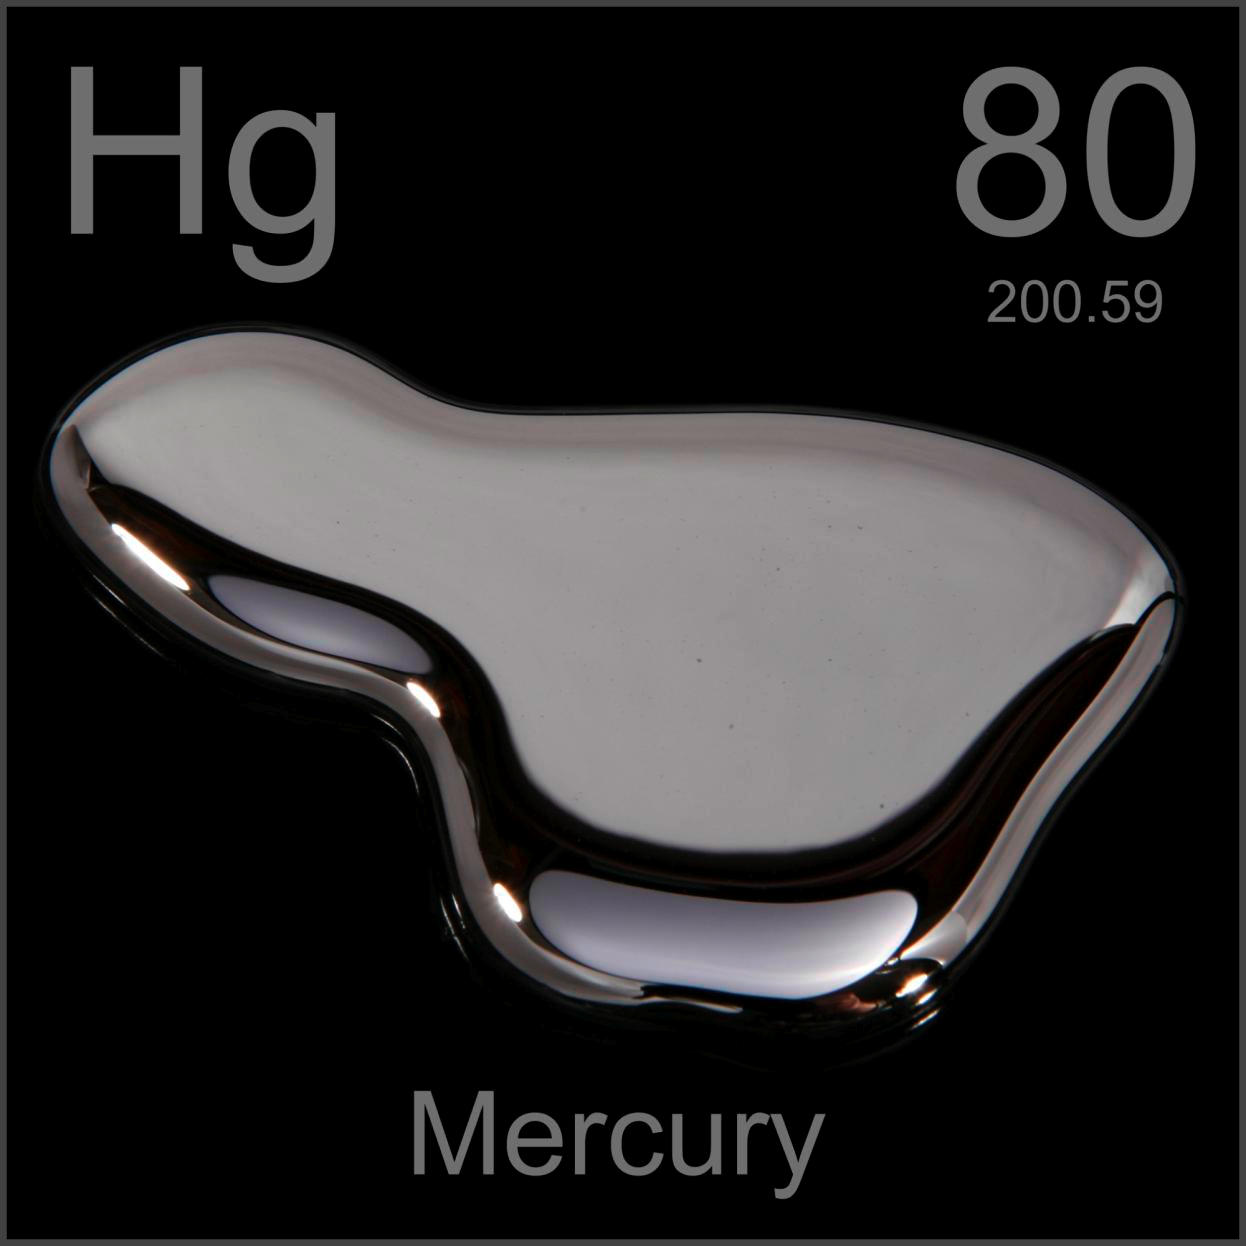 Facts Pictures Stories About The Element Mercury In Periodic Table Battery Replacement For Antique Instruments Poster Sample